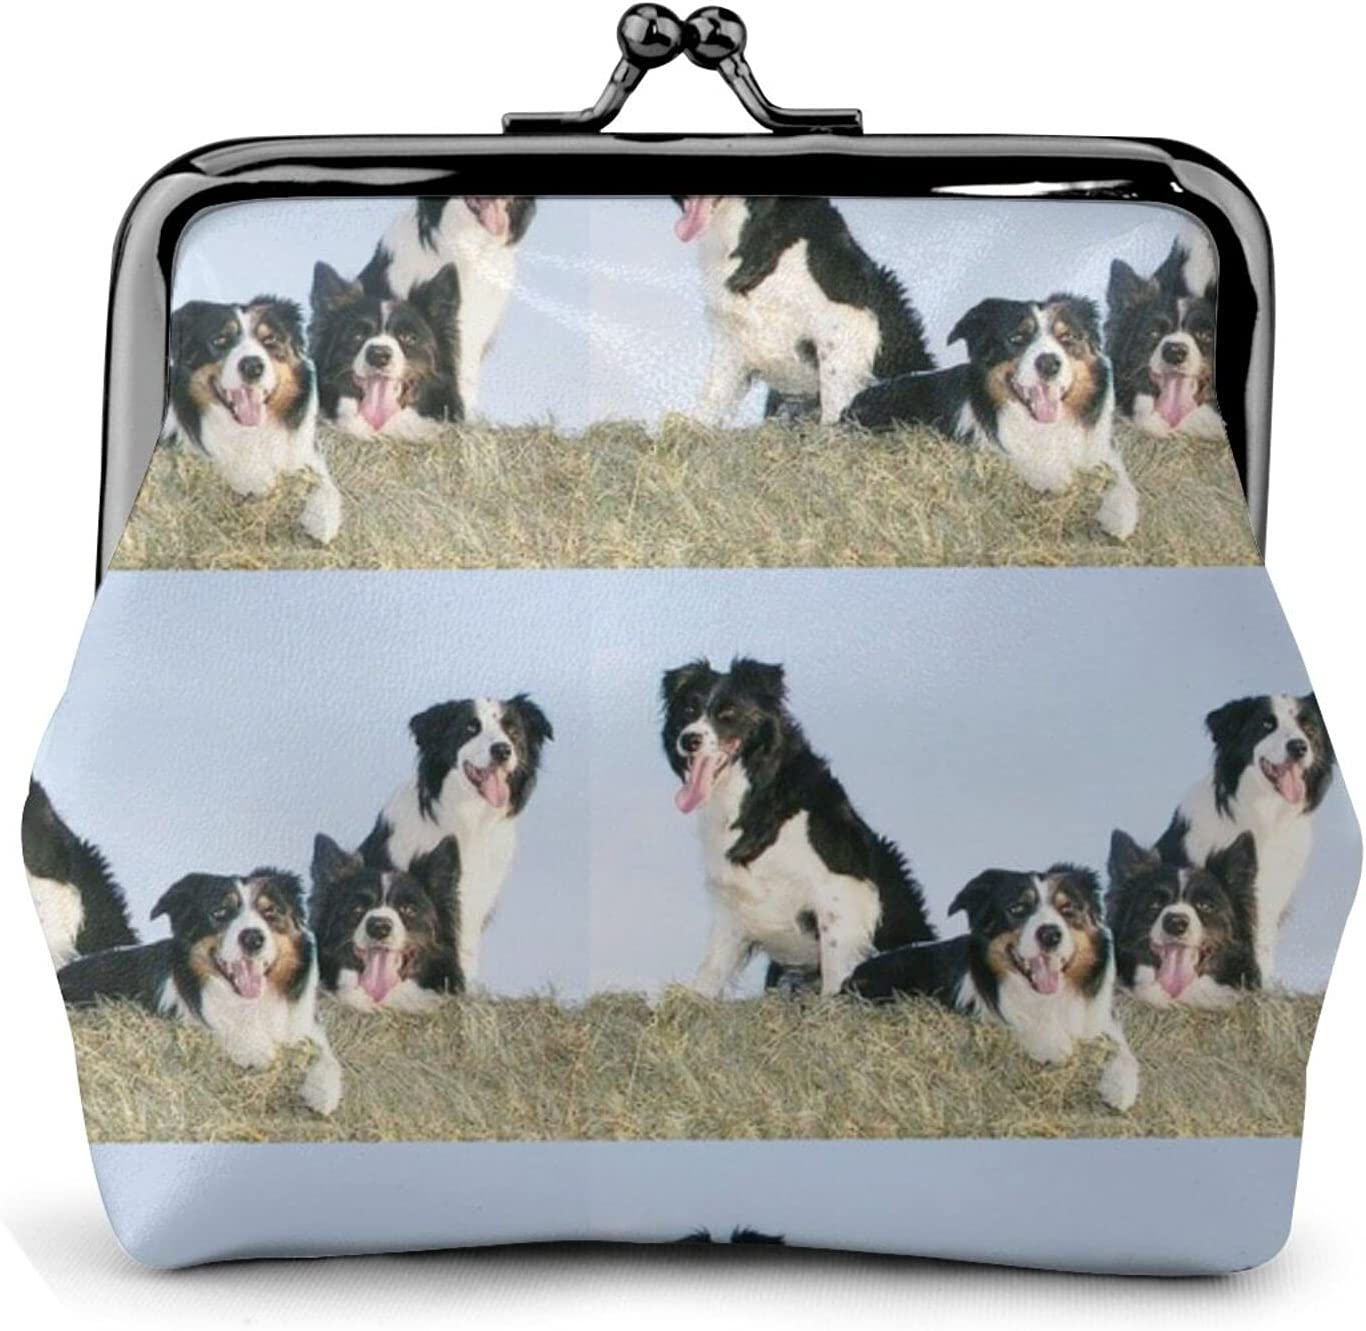 Border Collies In 868 Women'S Wallet Buckle Coin Purses Pouch Kiss-lock Change Travel Makeup Wallets, Black, One Size